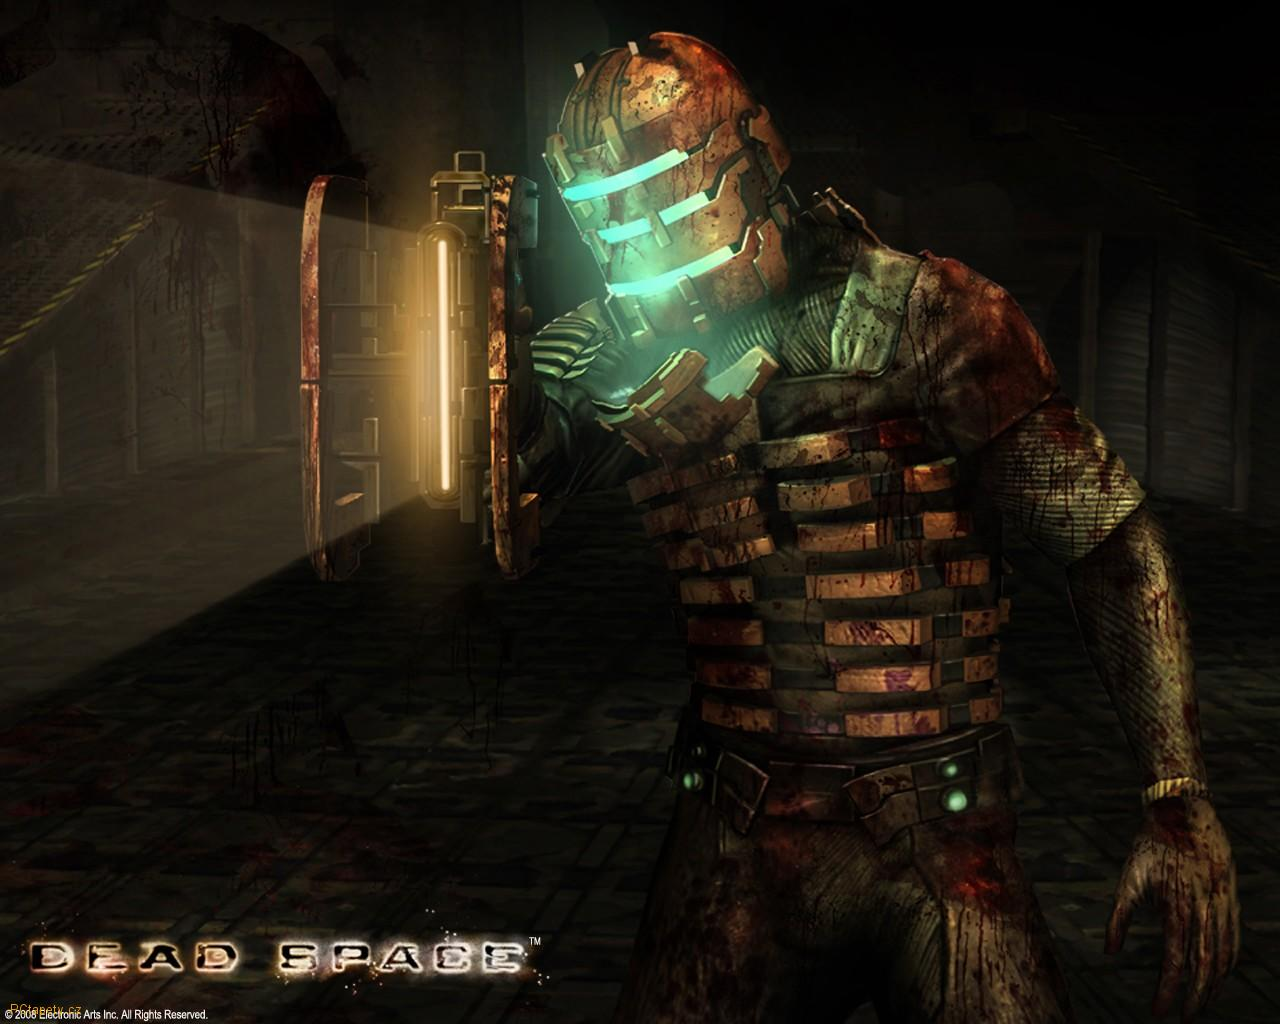 Request Isaac Clarke From Dead Space Skins Mapping And Modding